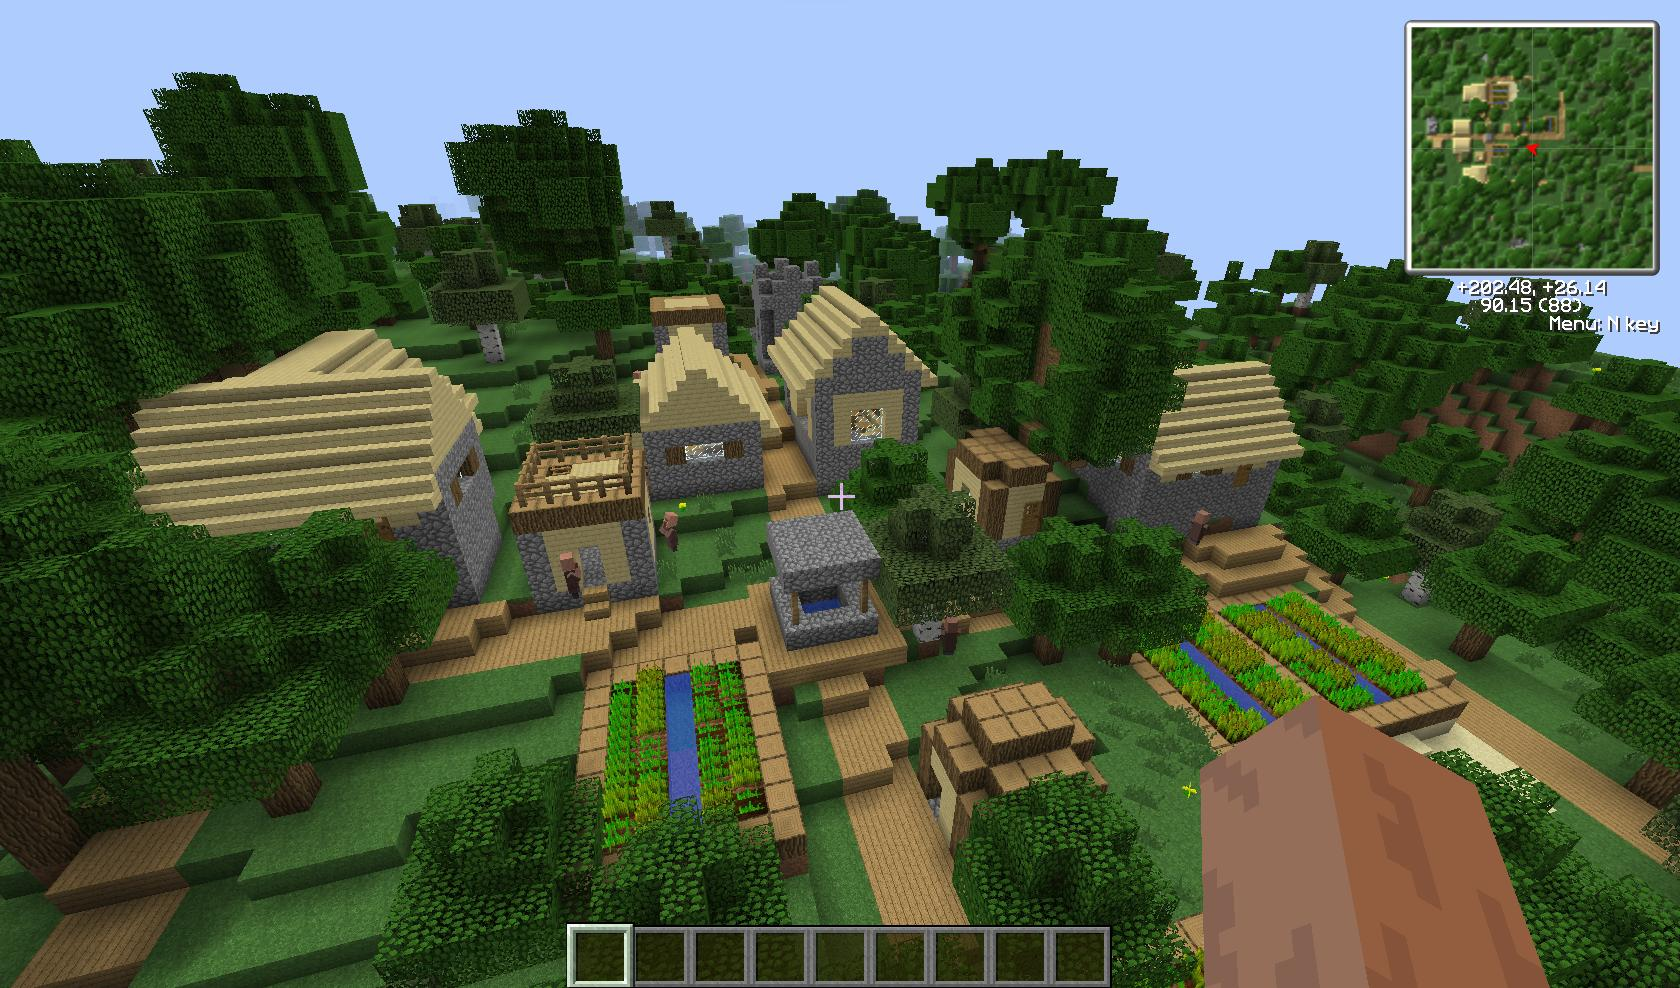 http://minecraft-forum.net/wp-content/uploads/2013/03/e2b09__More-Village-Biomes-Mod-1.jpg